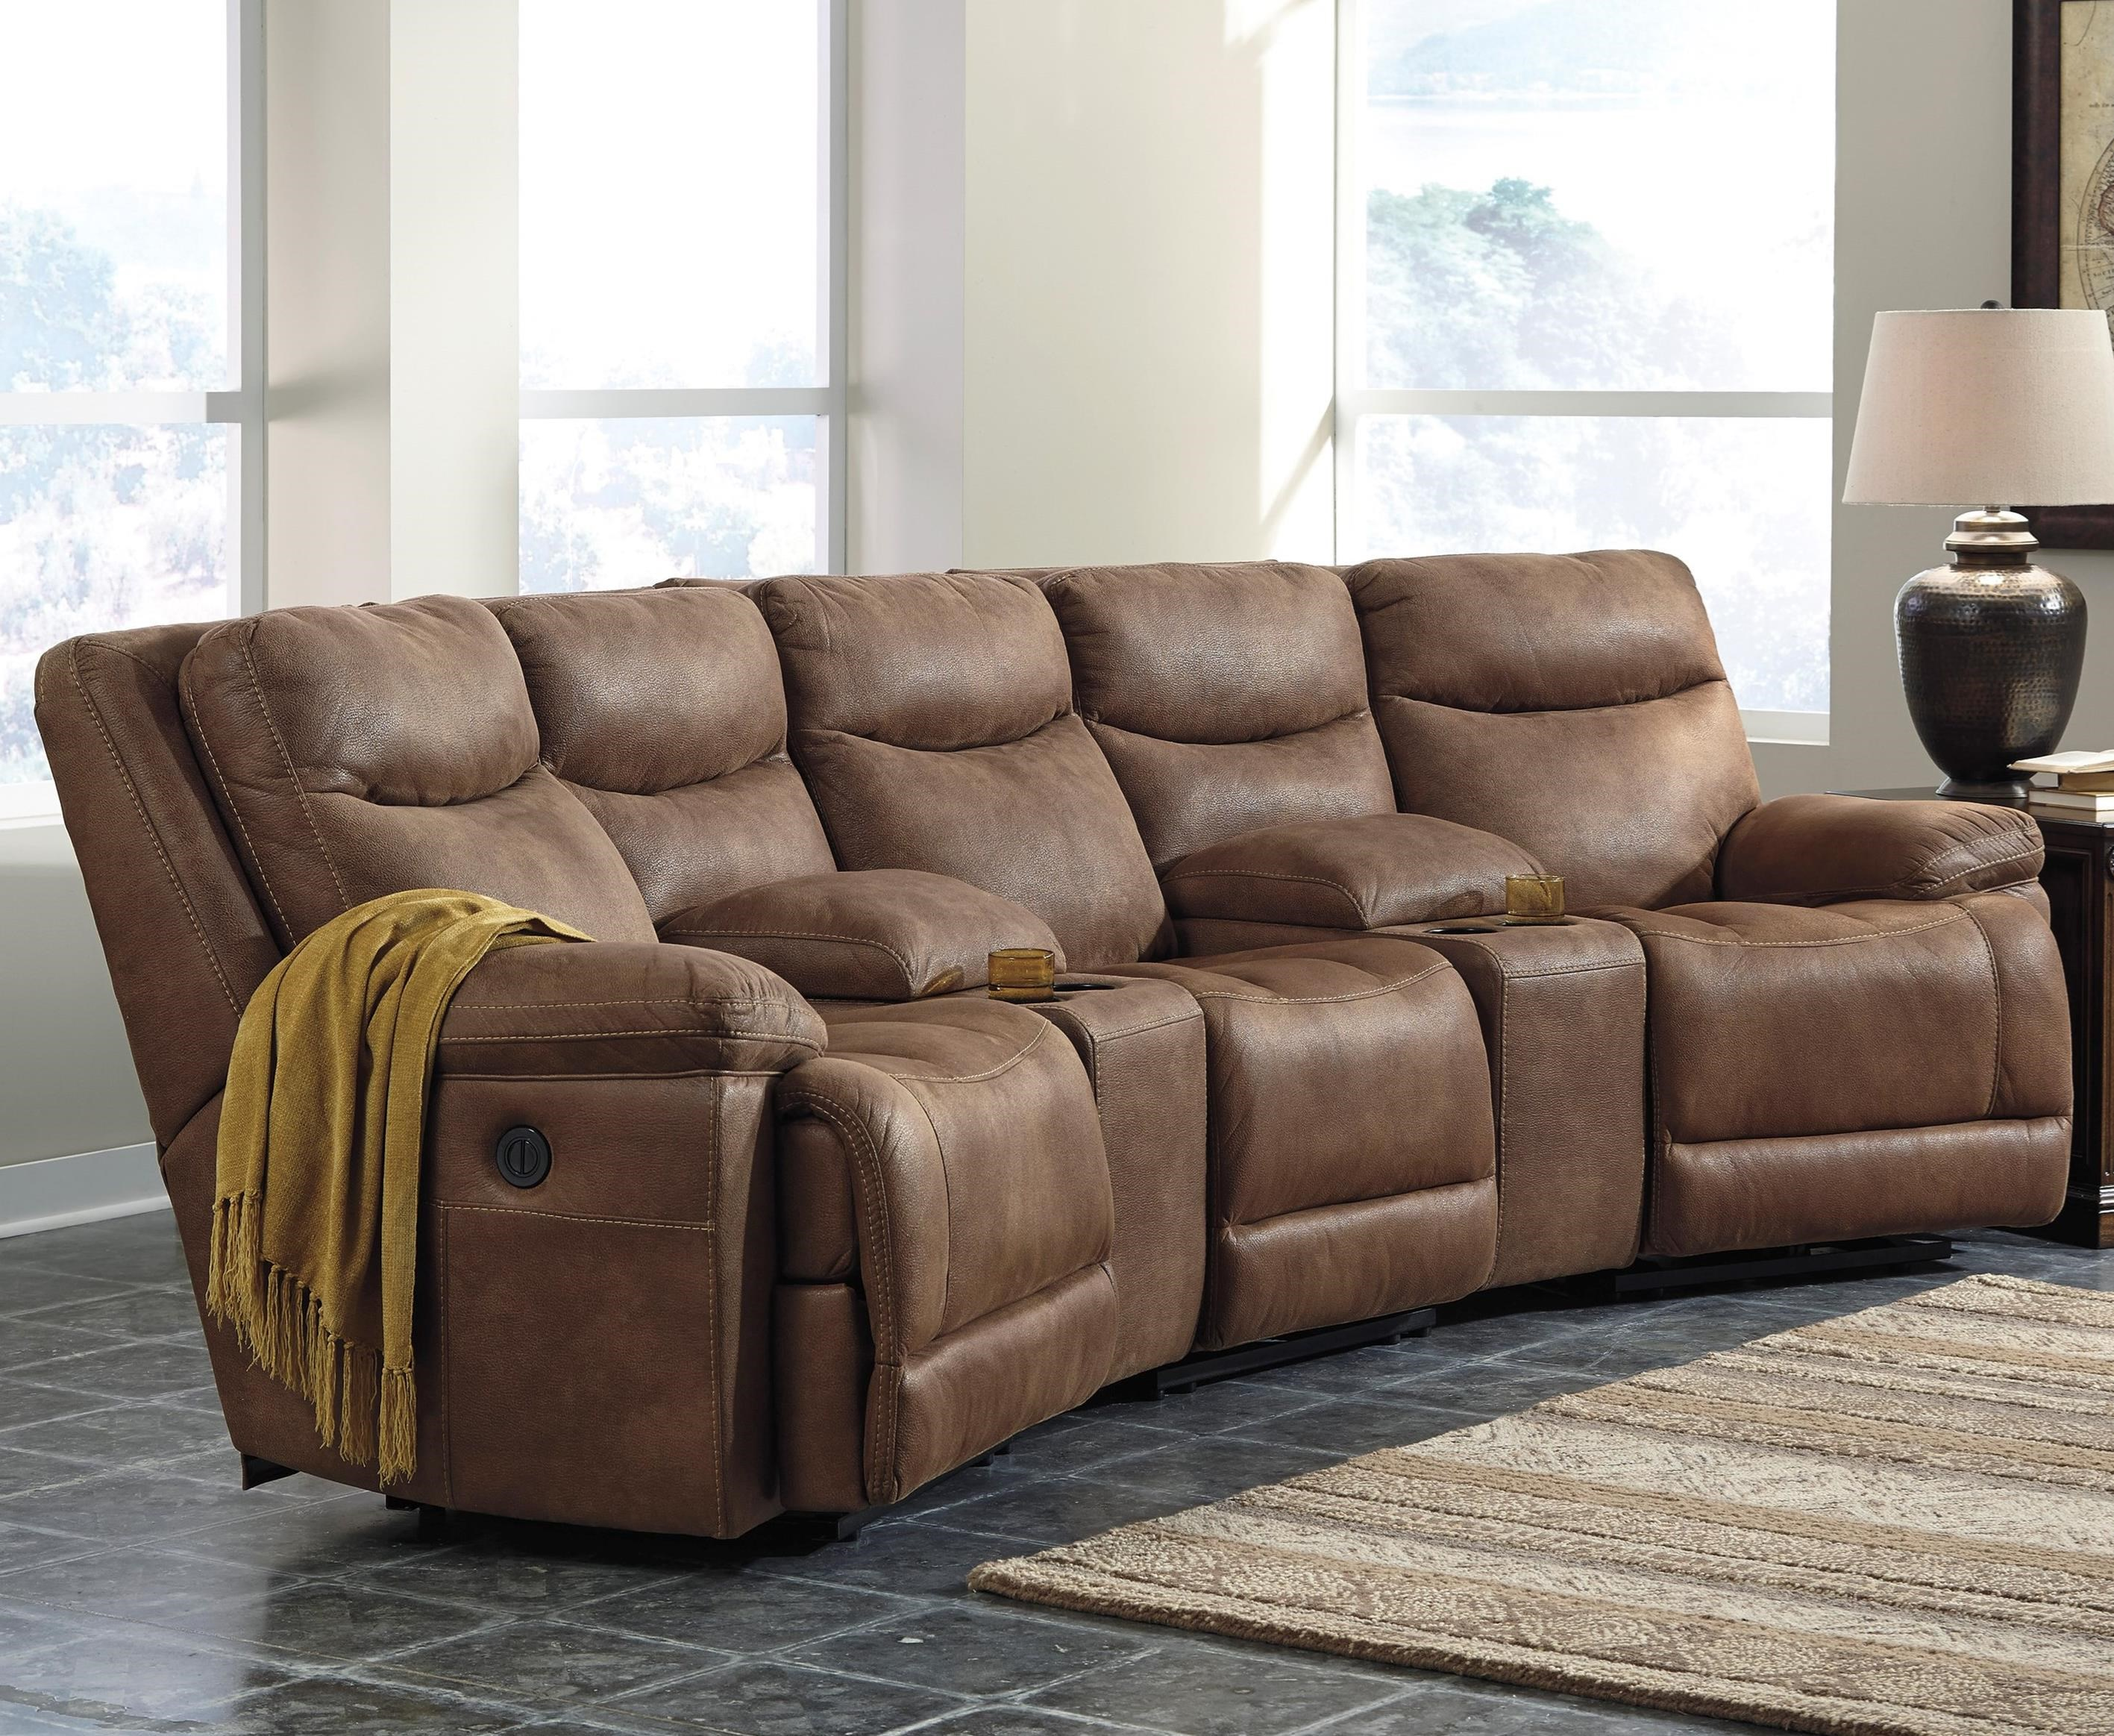 Power Reclining Sectional w Angled Consoles by Signature Design